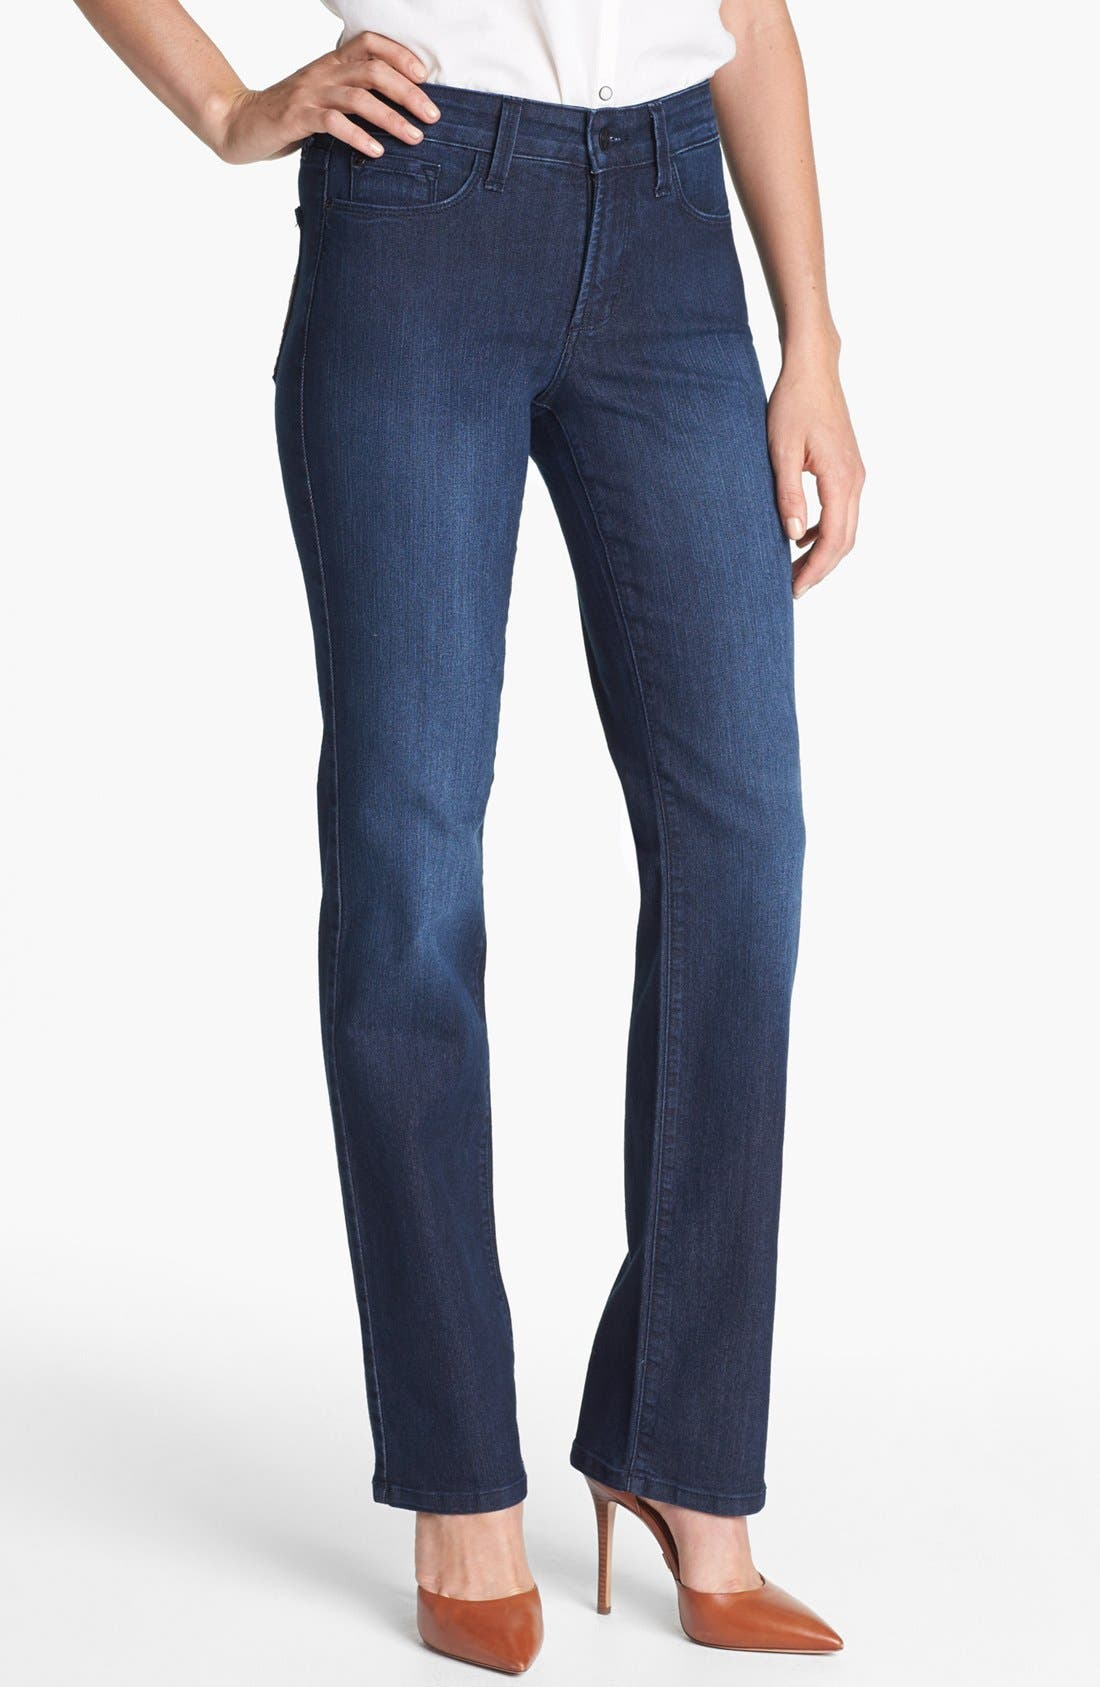 Main Image - NYDJ 'Marilyn' Stretch Straight Leg Jeans (Dana Point) (Petite)